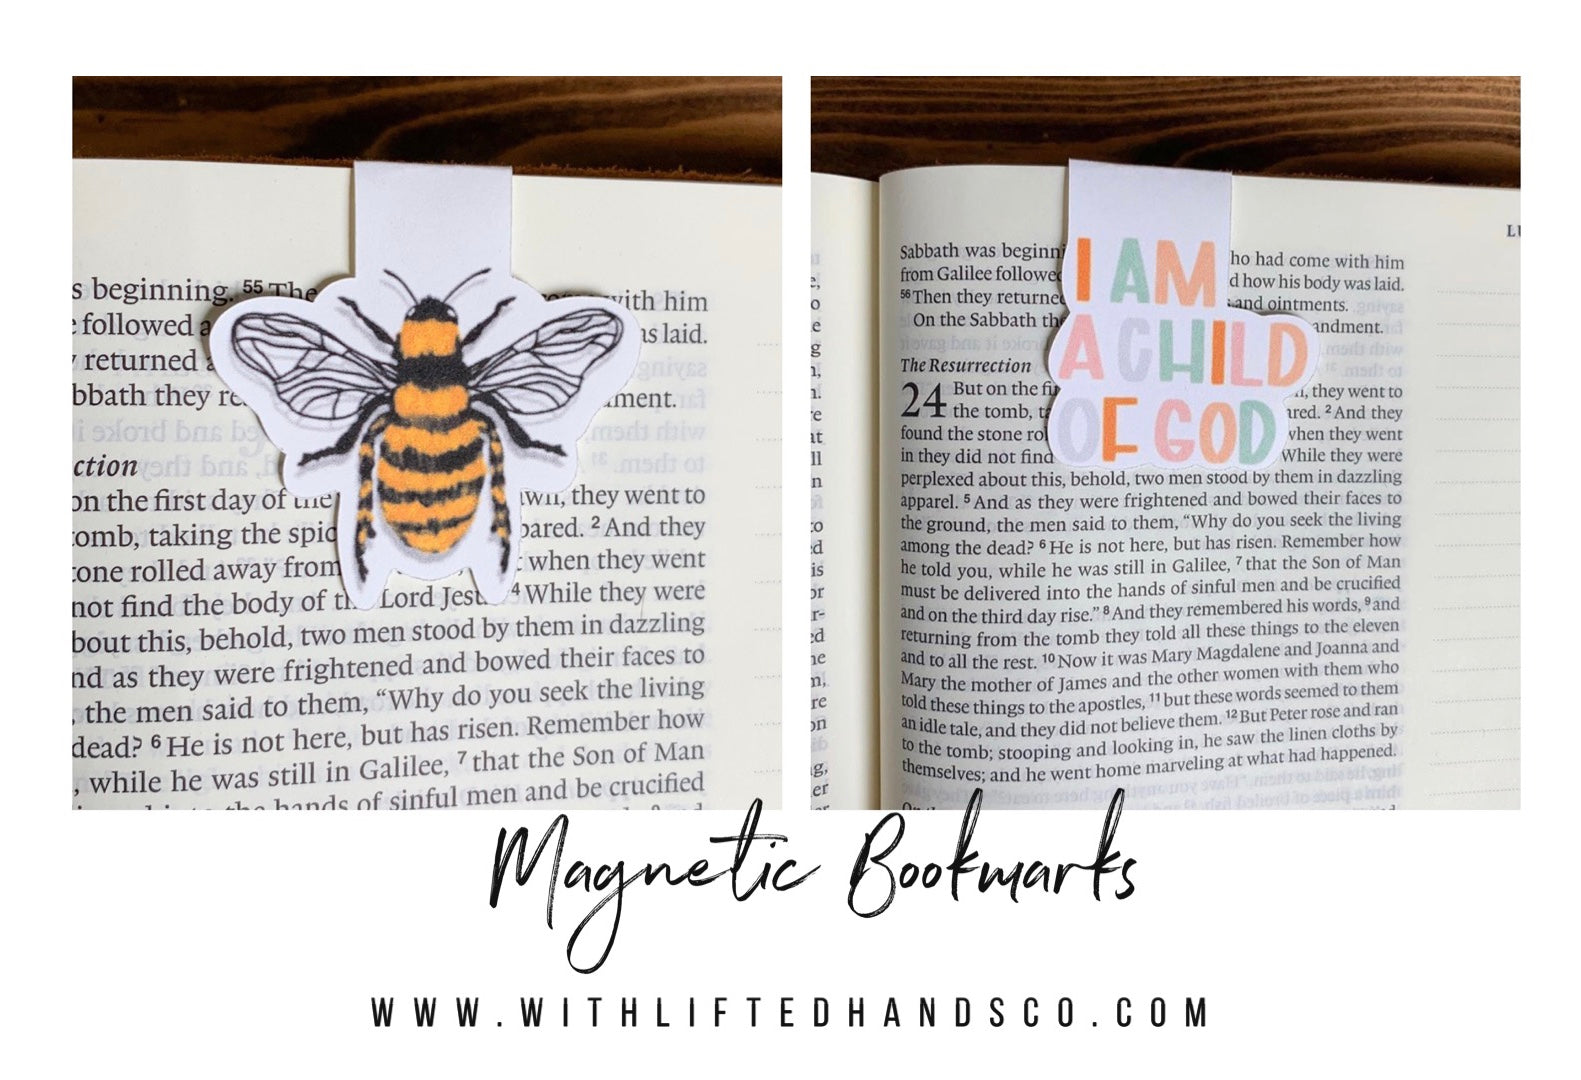 Magnetic Bookmarks by with lifted hands co